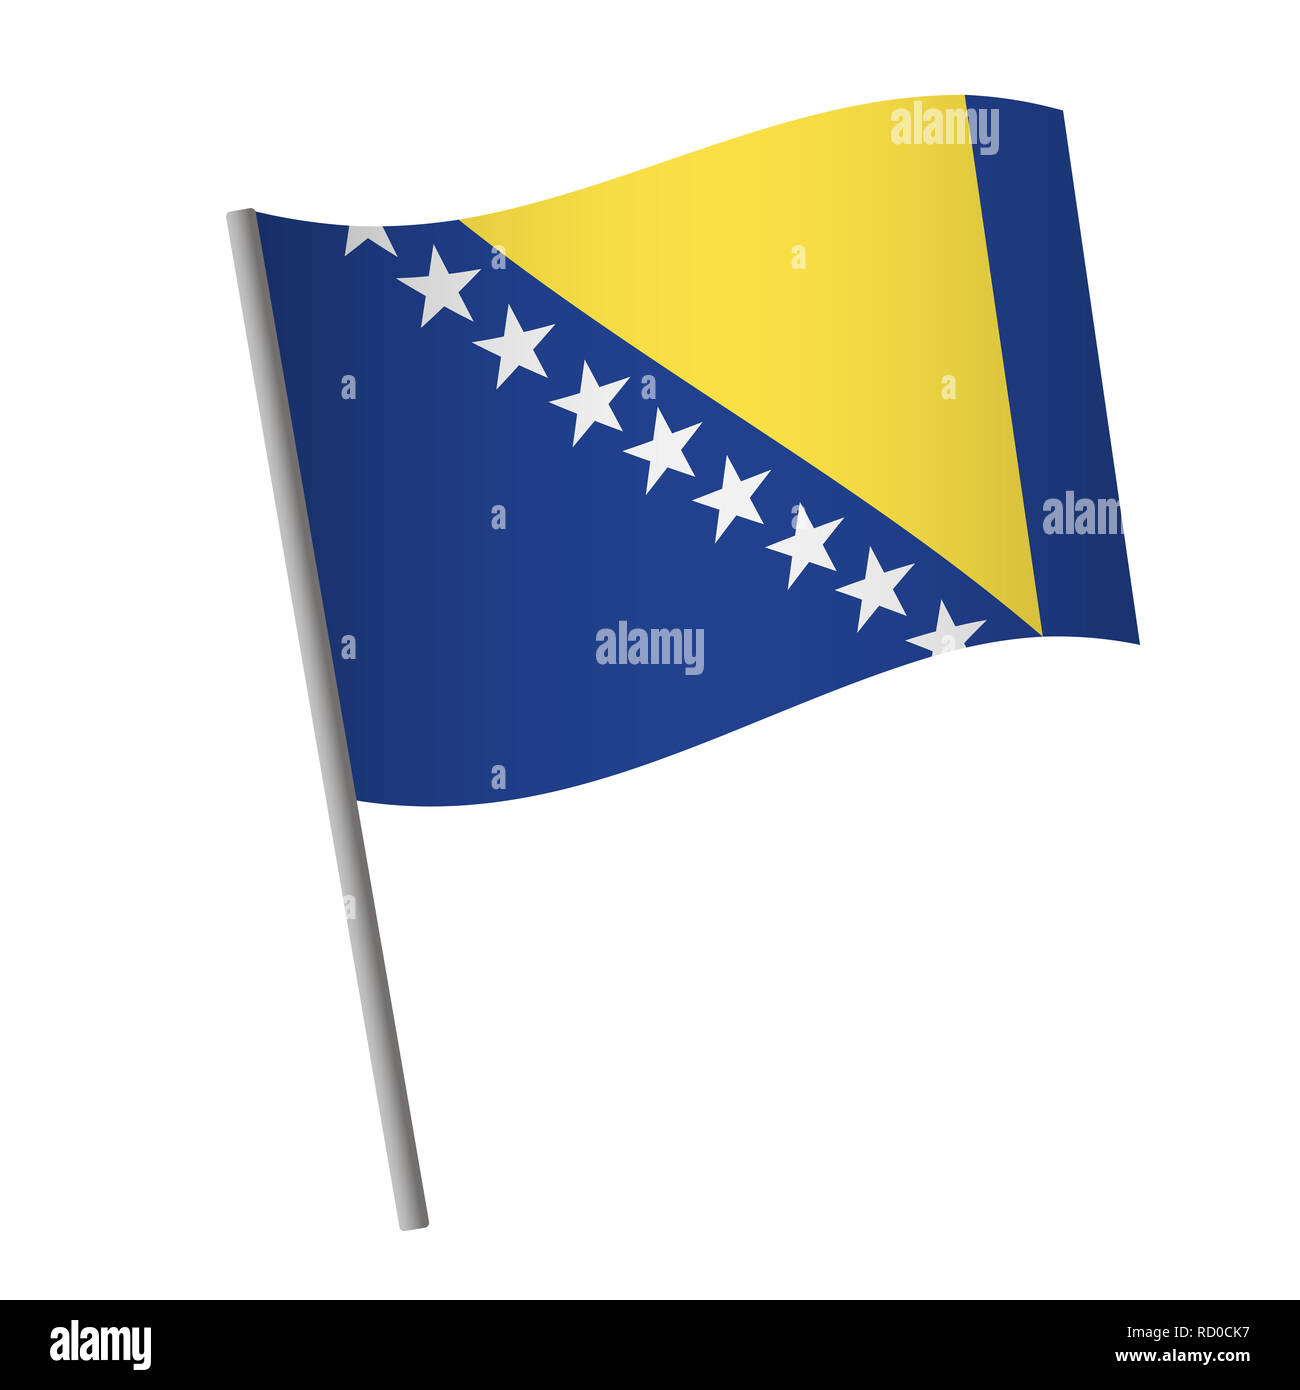 Bosnia and Herzegovina flag icon. National flag of Bosnia and Herzegovina on a pole  illustration. - Stock Image